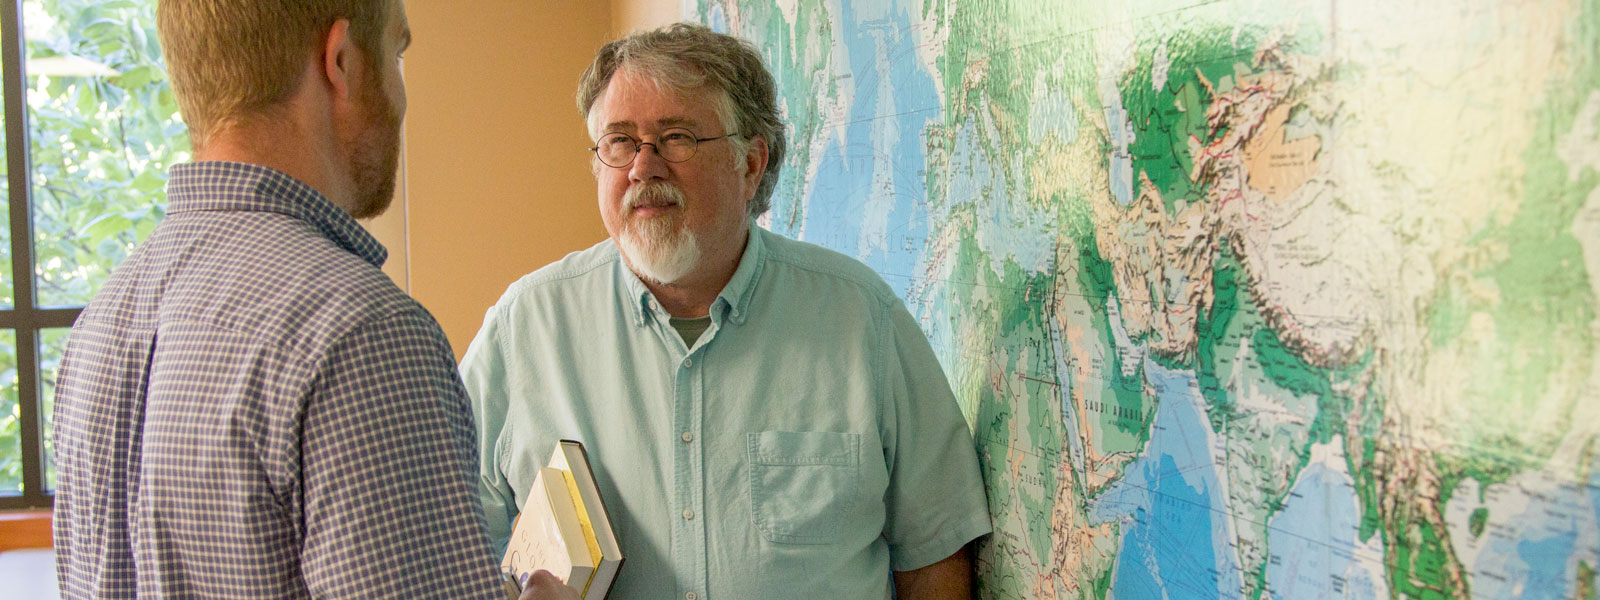 ministry professor holds books and talks to student while standing in front of world map on wall